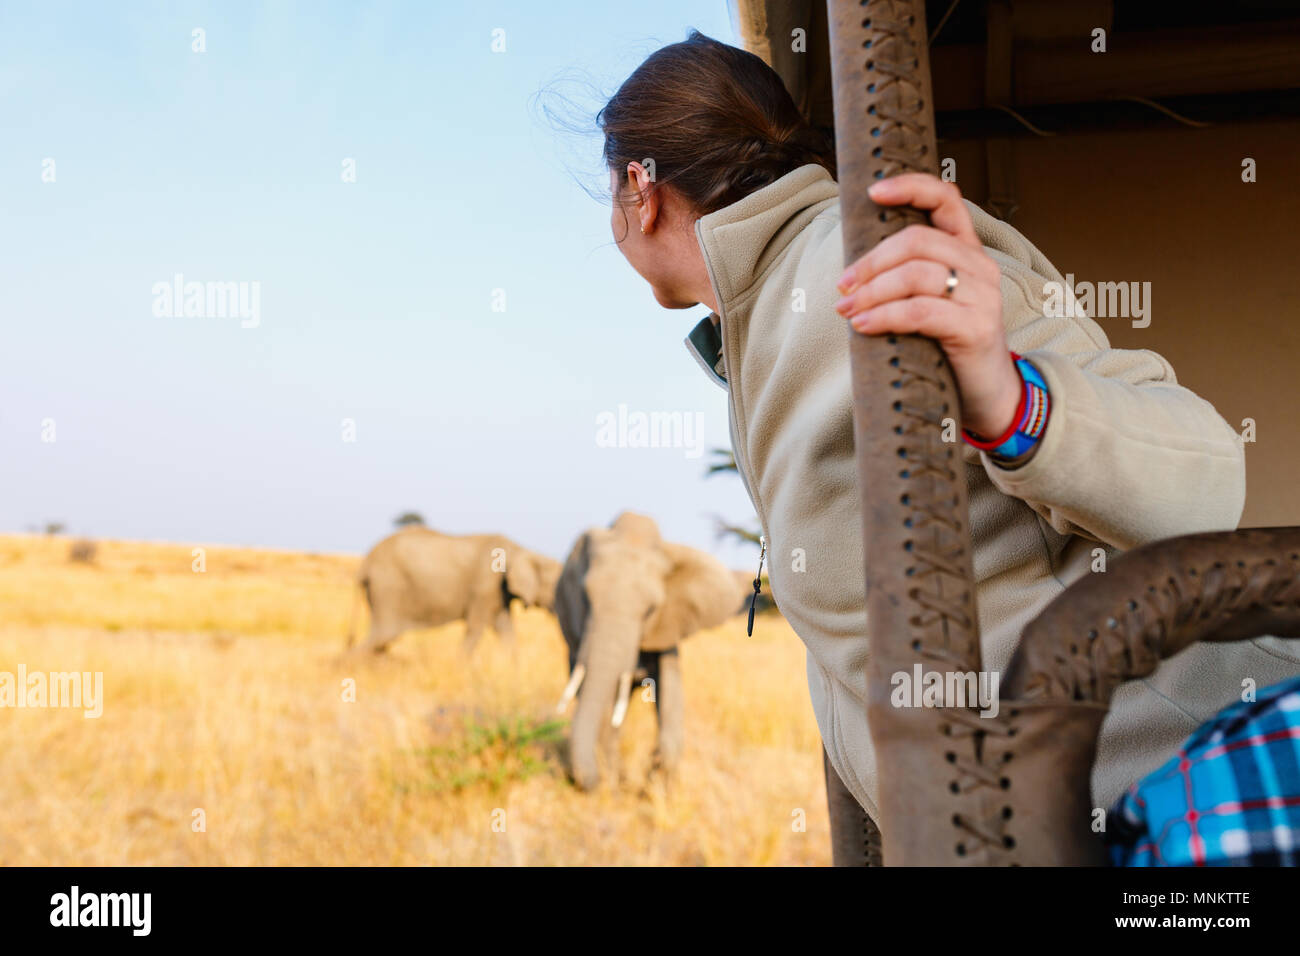 Woman on safari game drive enjoying close encounter with elephants in Kenya Africa Stock Photo